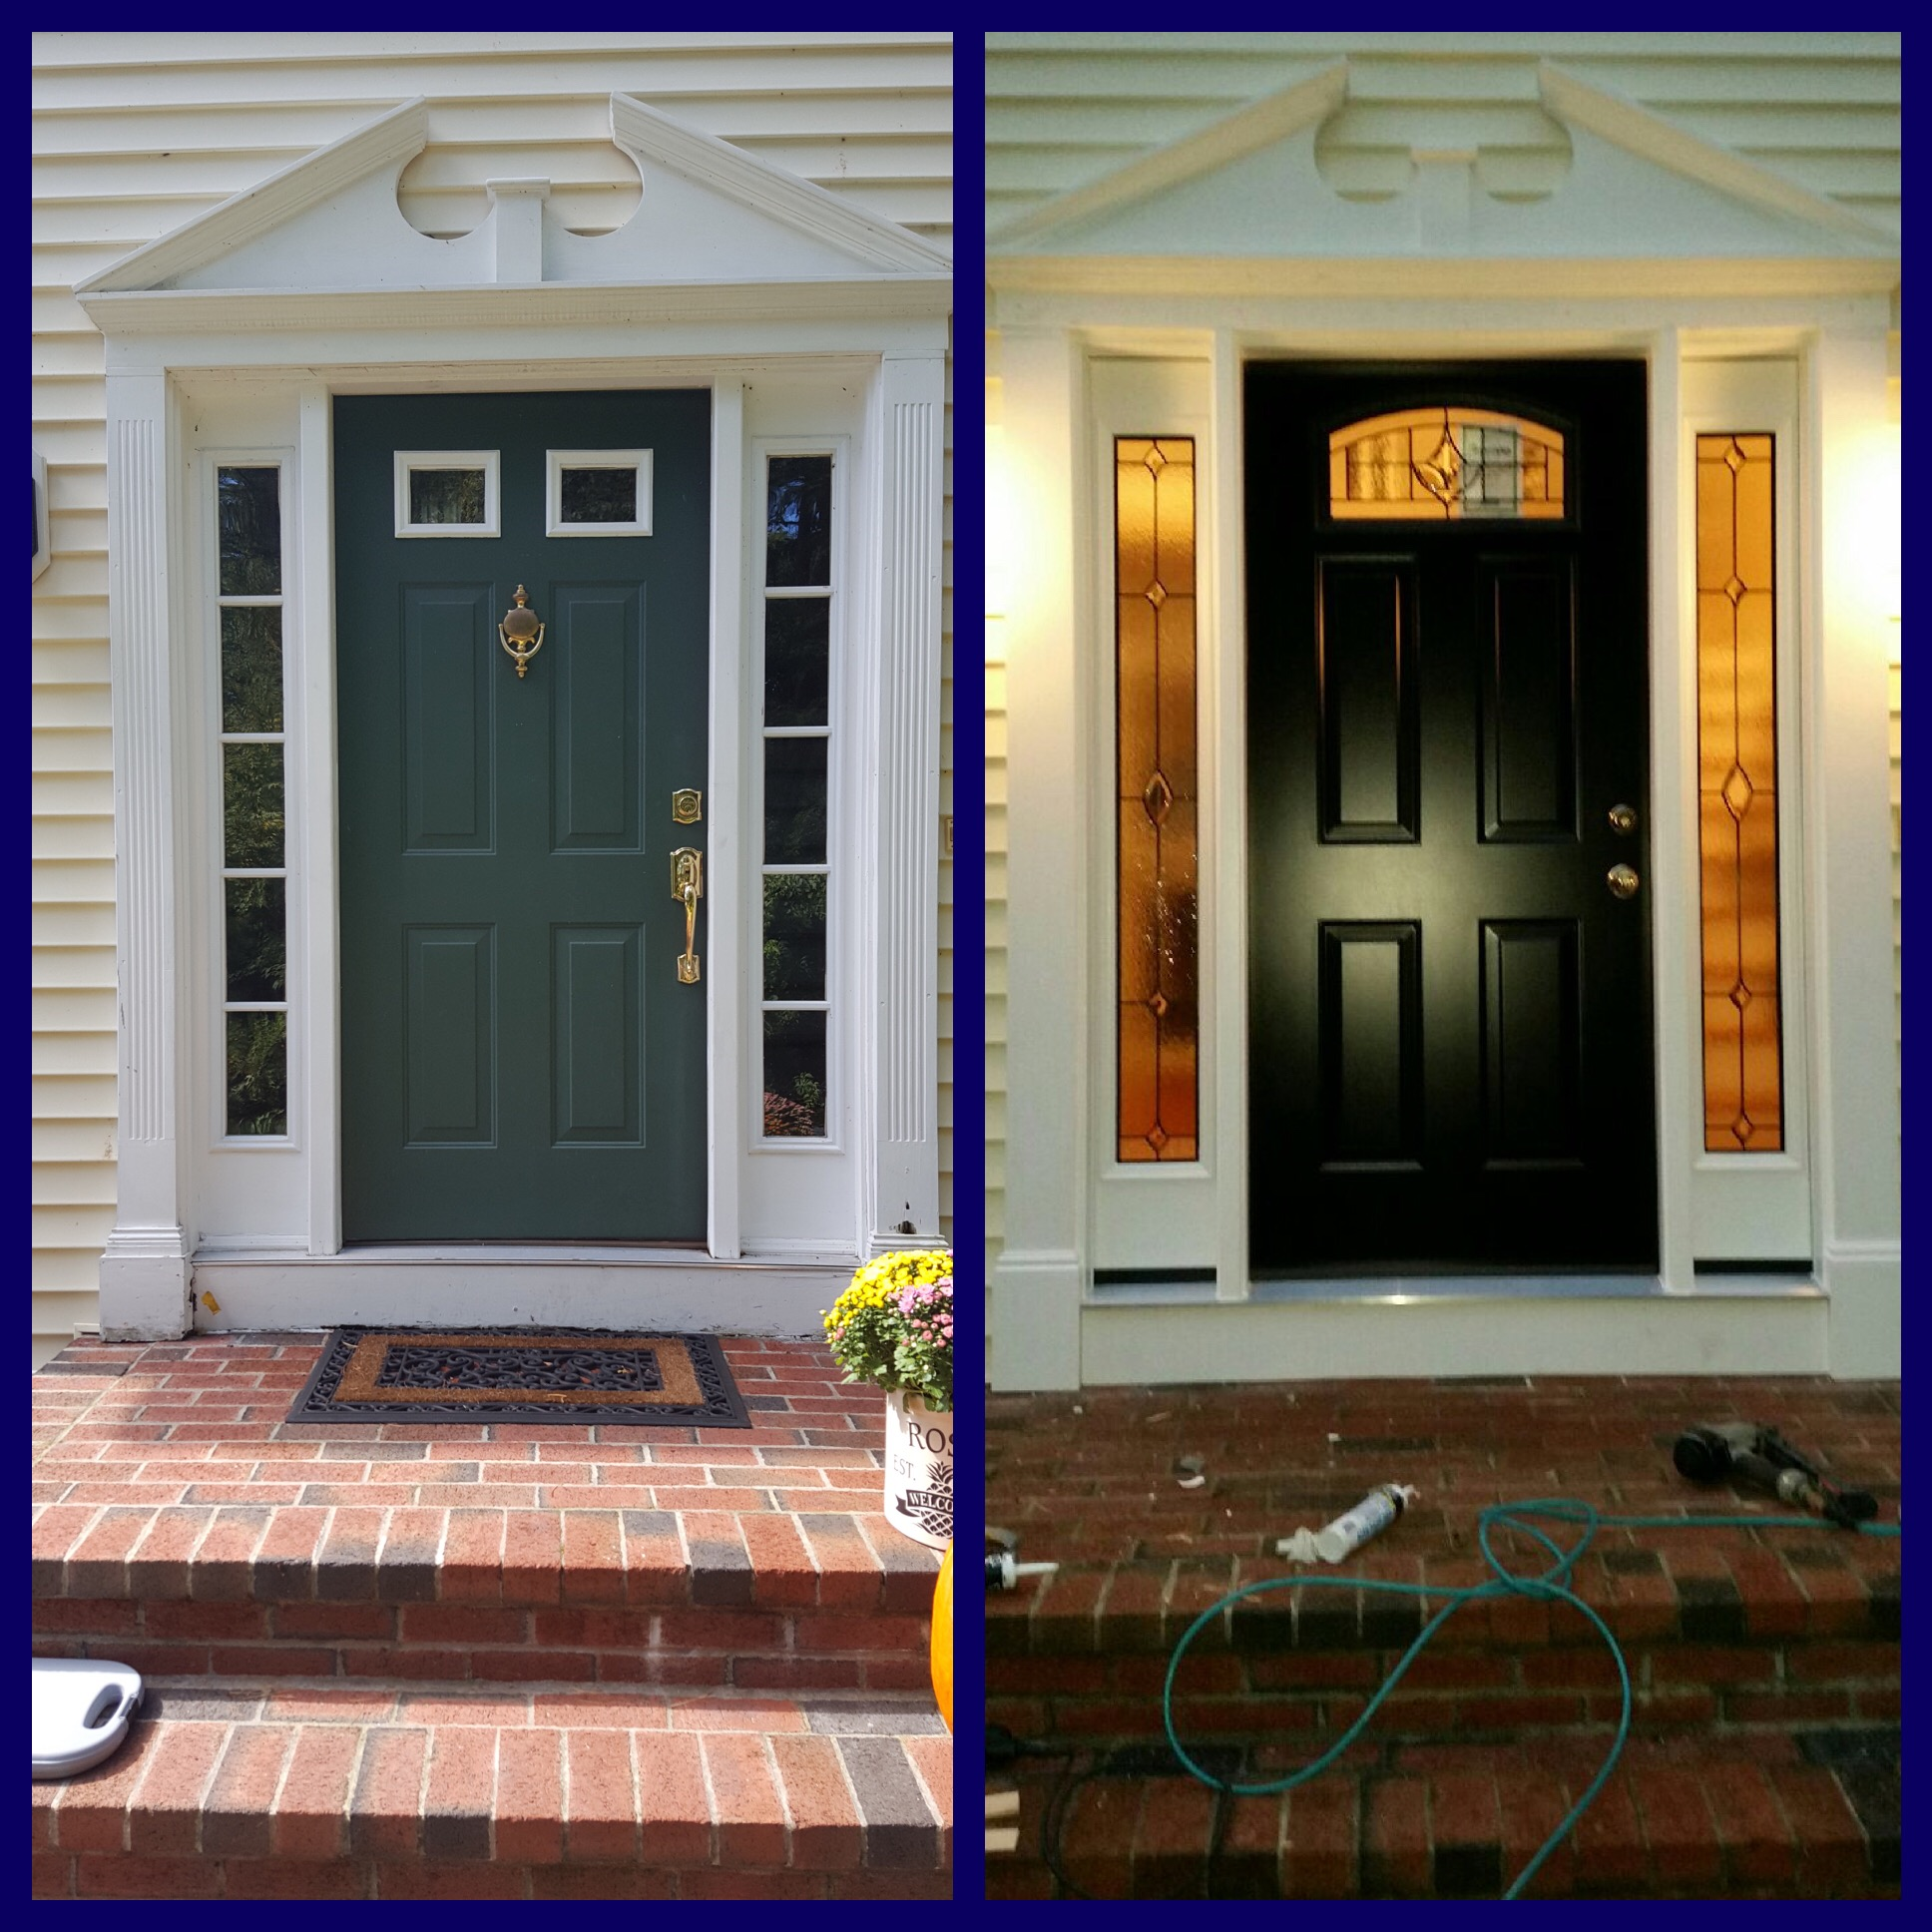 New Fiberglass front entry door in Taunton, MA